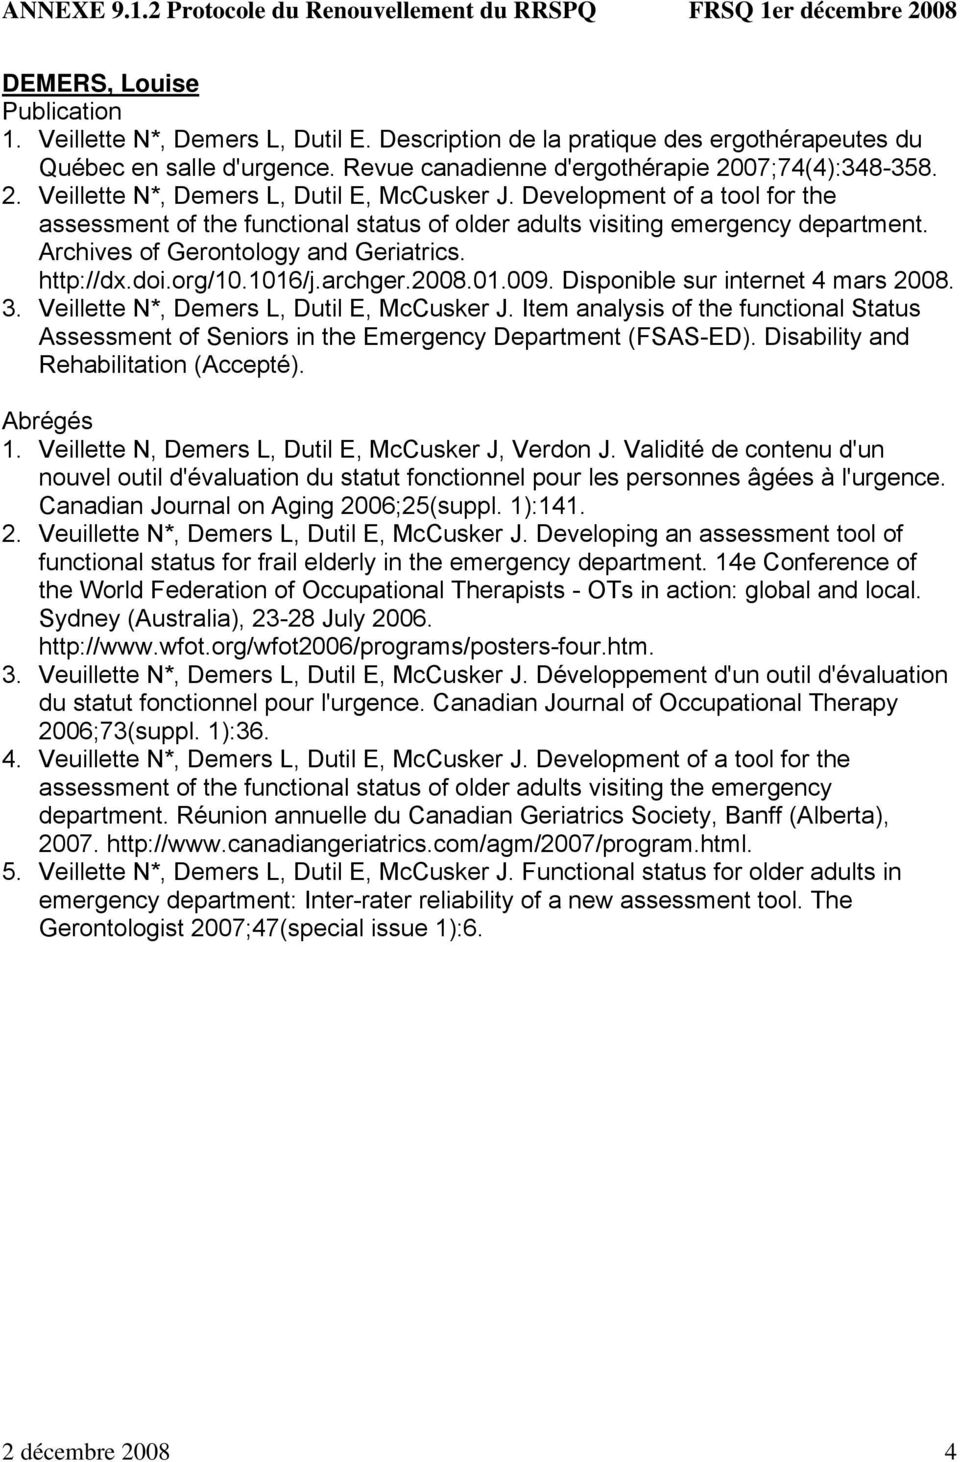 Archives of Gerontology and Geriatrics. http://dx.doi.org/10.1016/j.archger.2008.01.009. Disponible sur internet 4 mars 2008. 3. Veillette N*, Demers L, Dutil E, McCusker J.